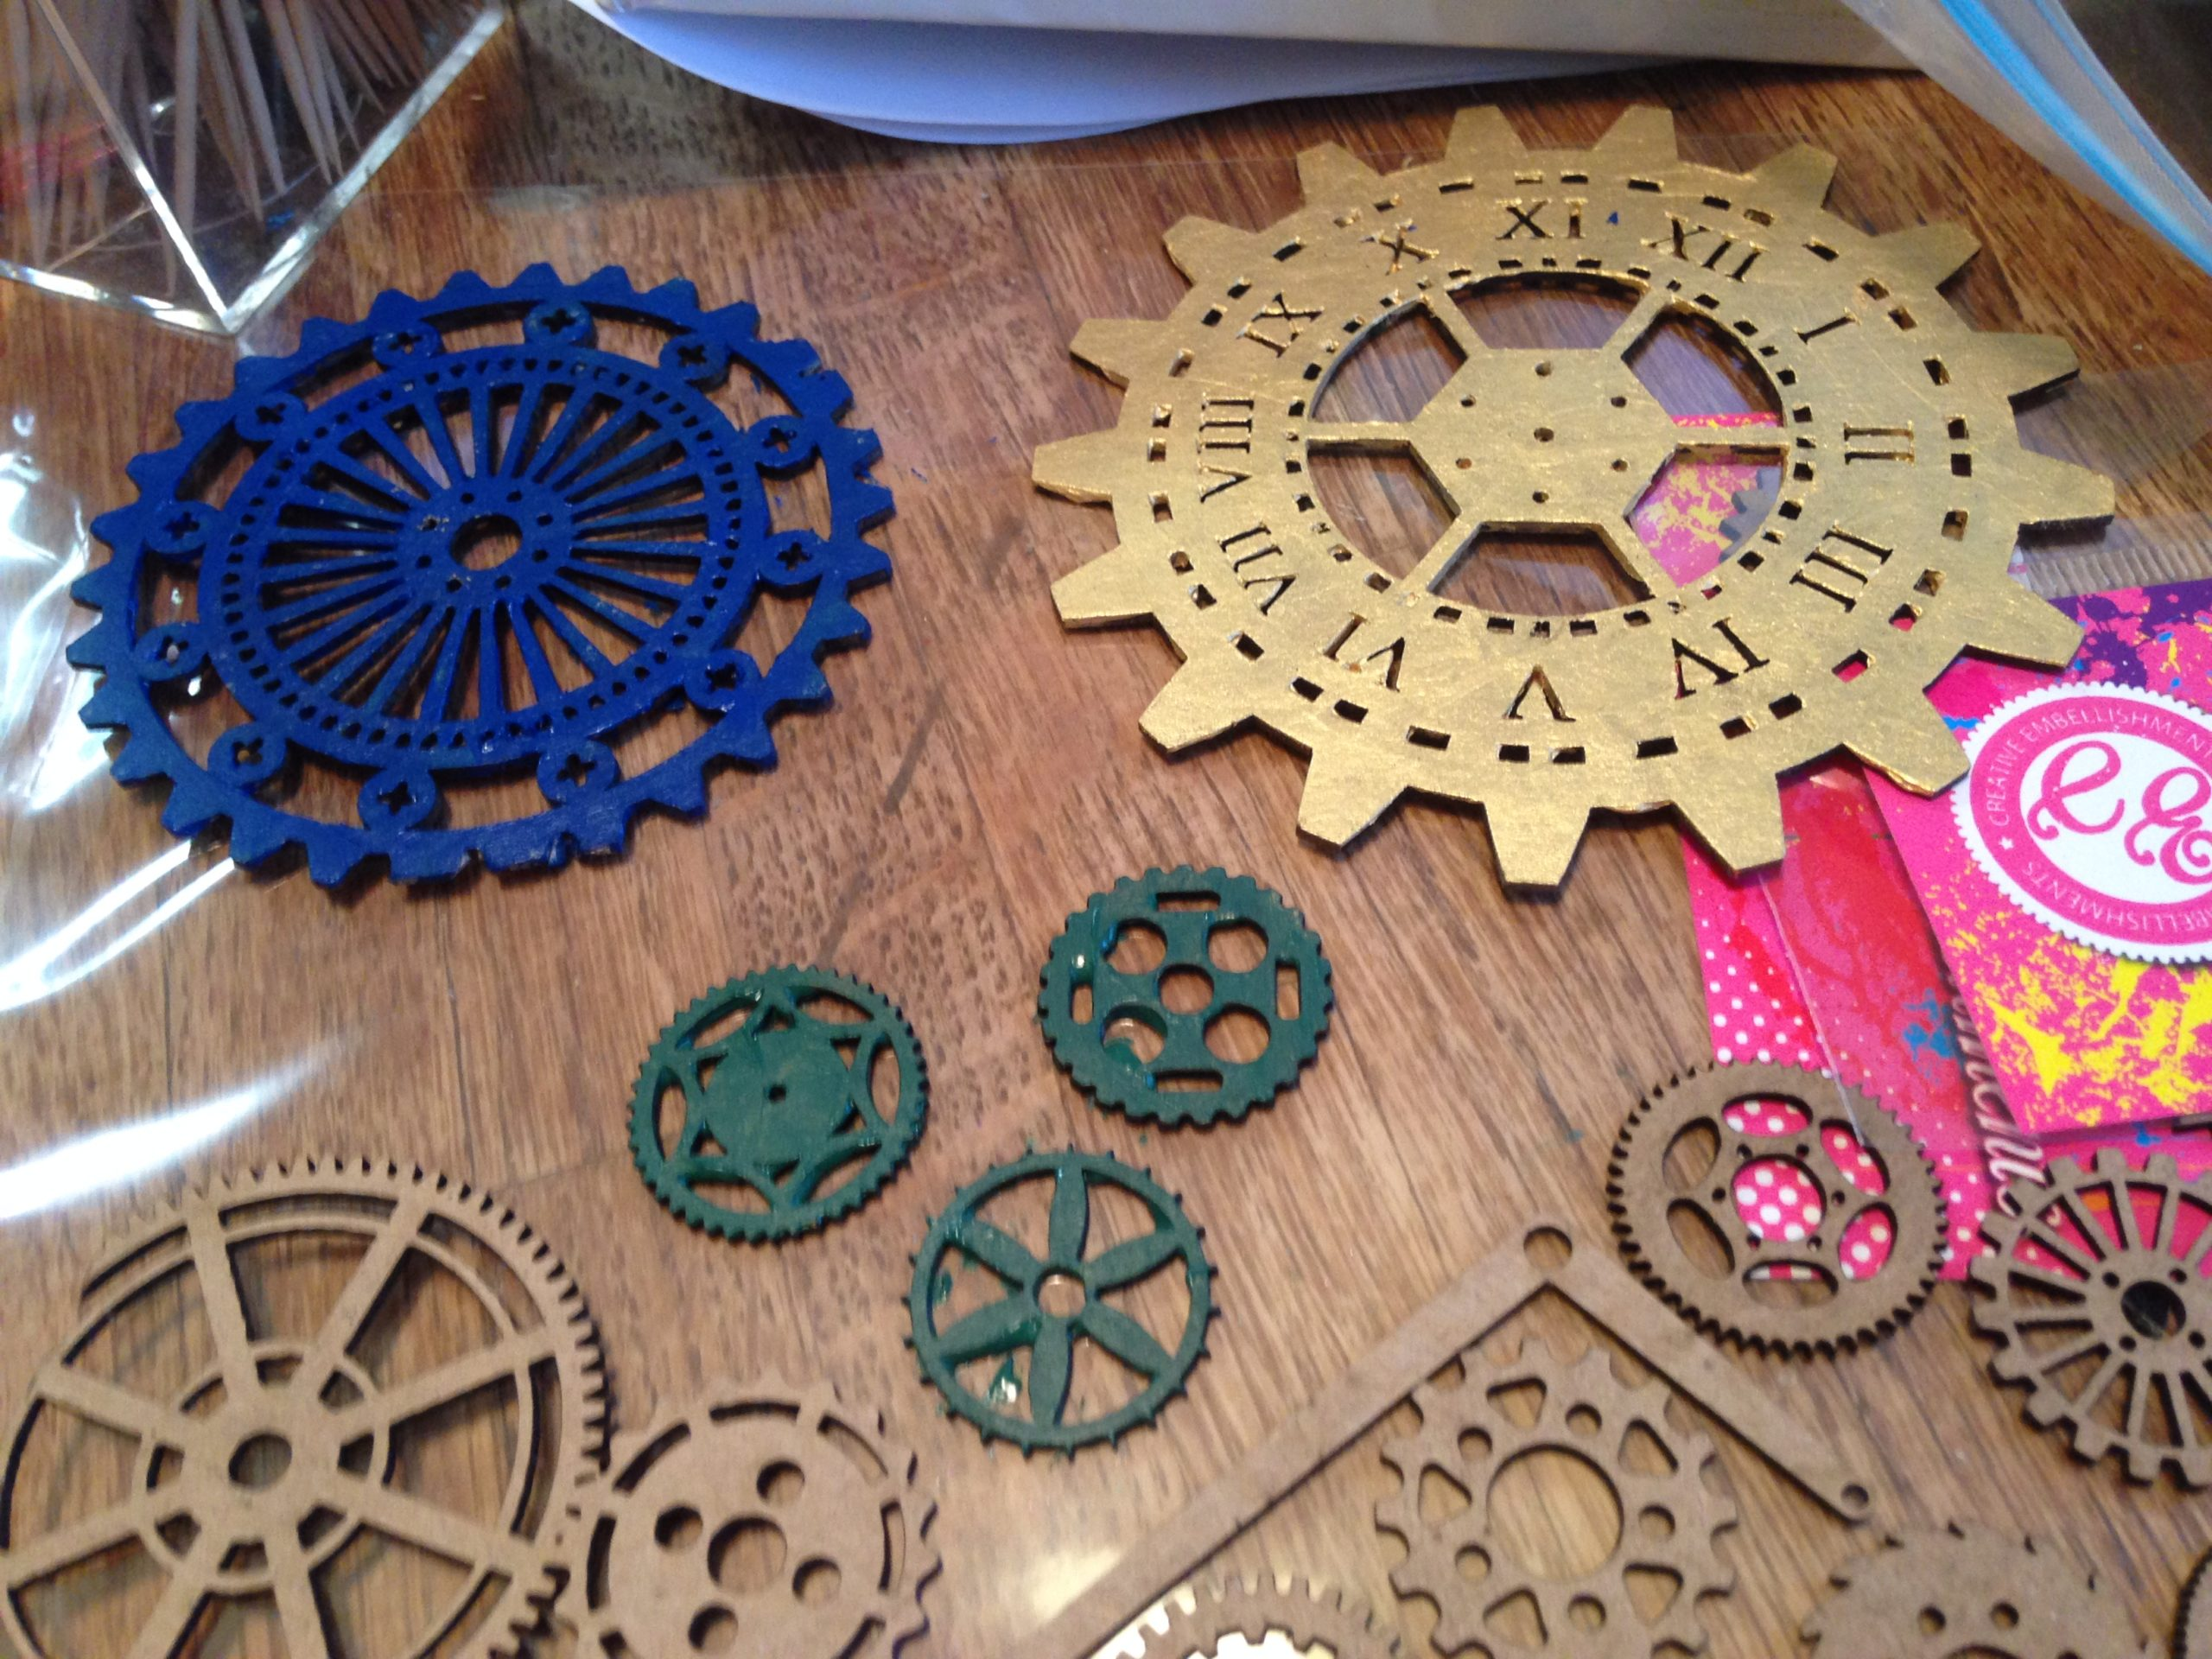 Gears Painted Before Gluing